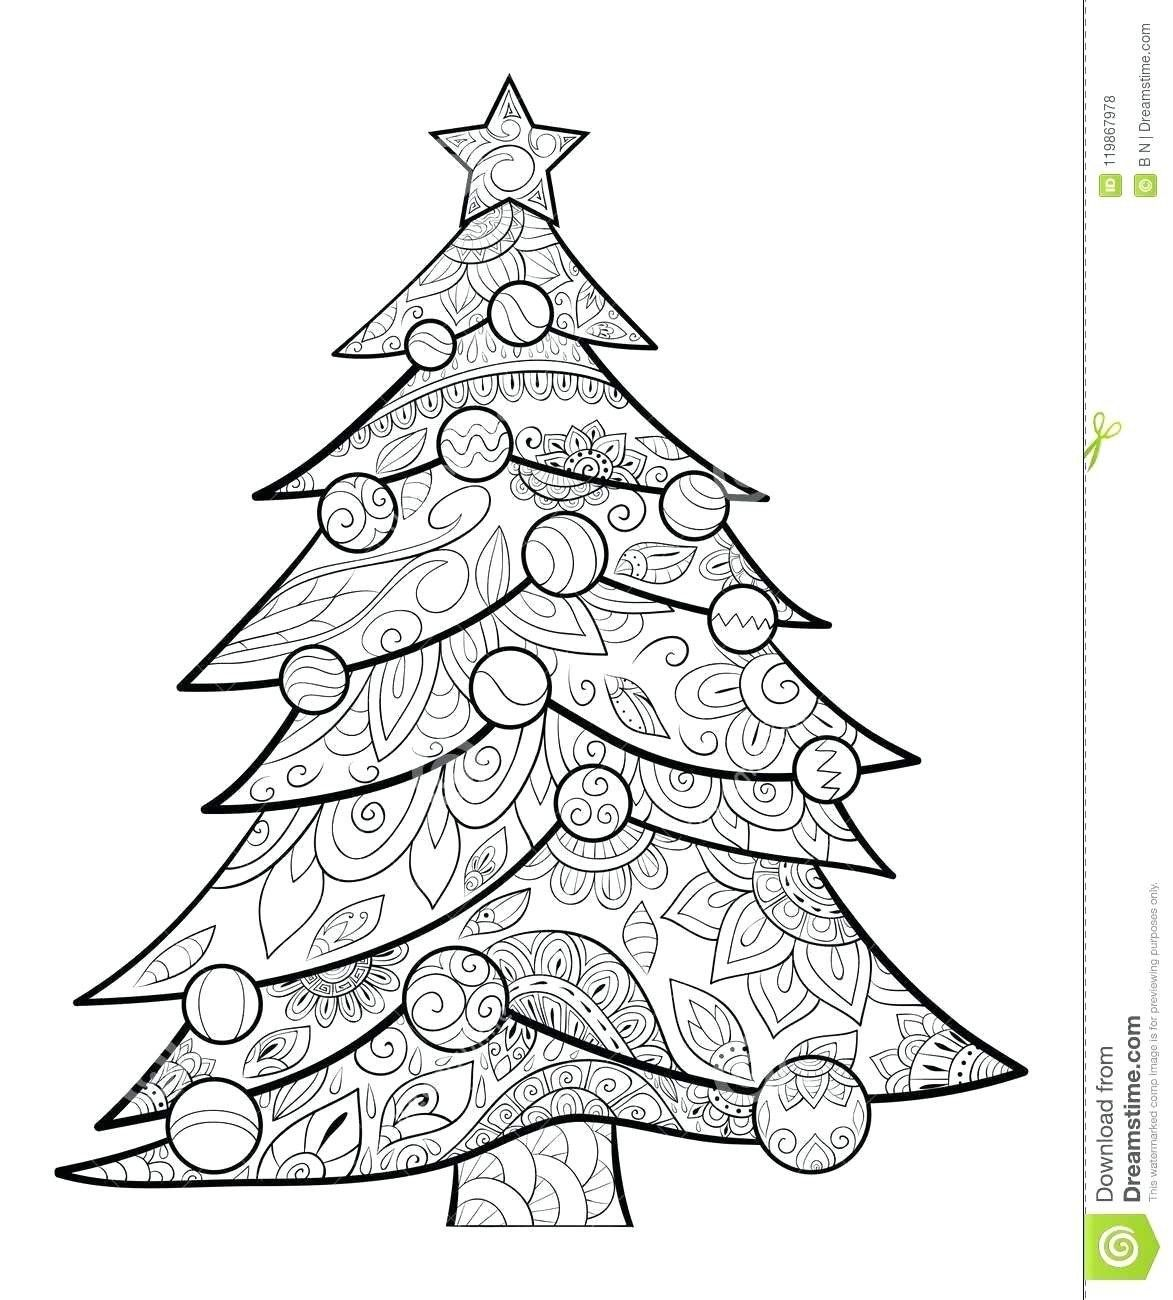 Printable Christmas Tree Coloring Pages Peppa Pig Christmas Tree Coloring Pages Christmas C Tree Coloring Page Christmas Tree Coloring Page Star Coloring Pages